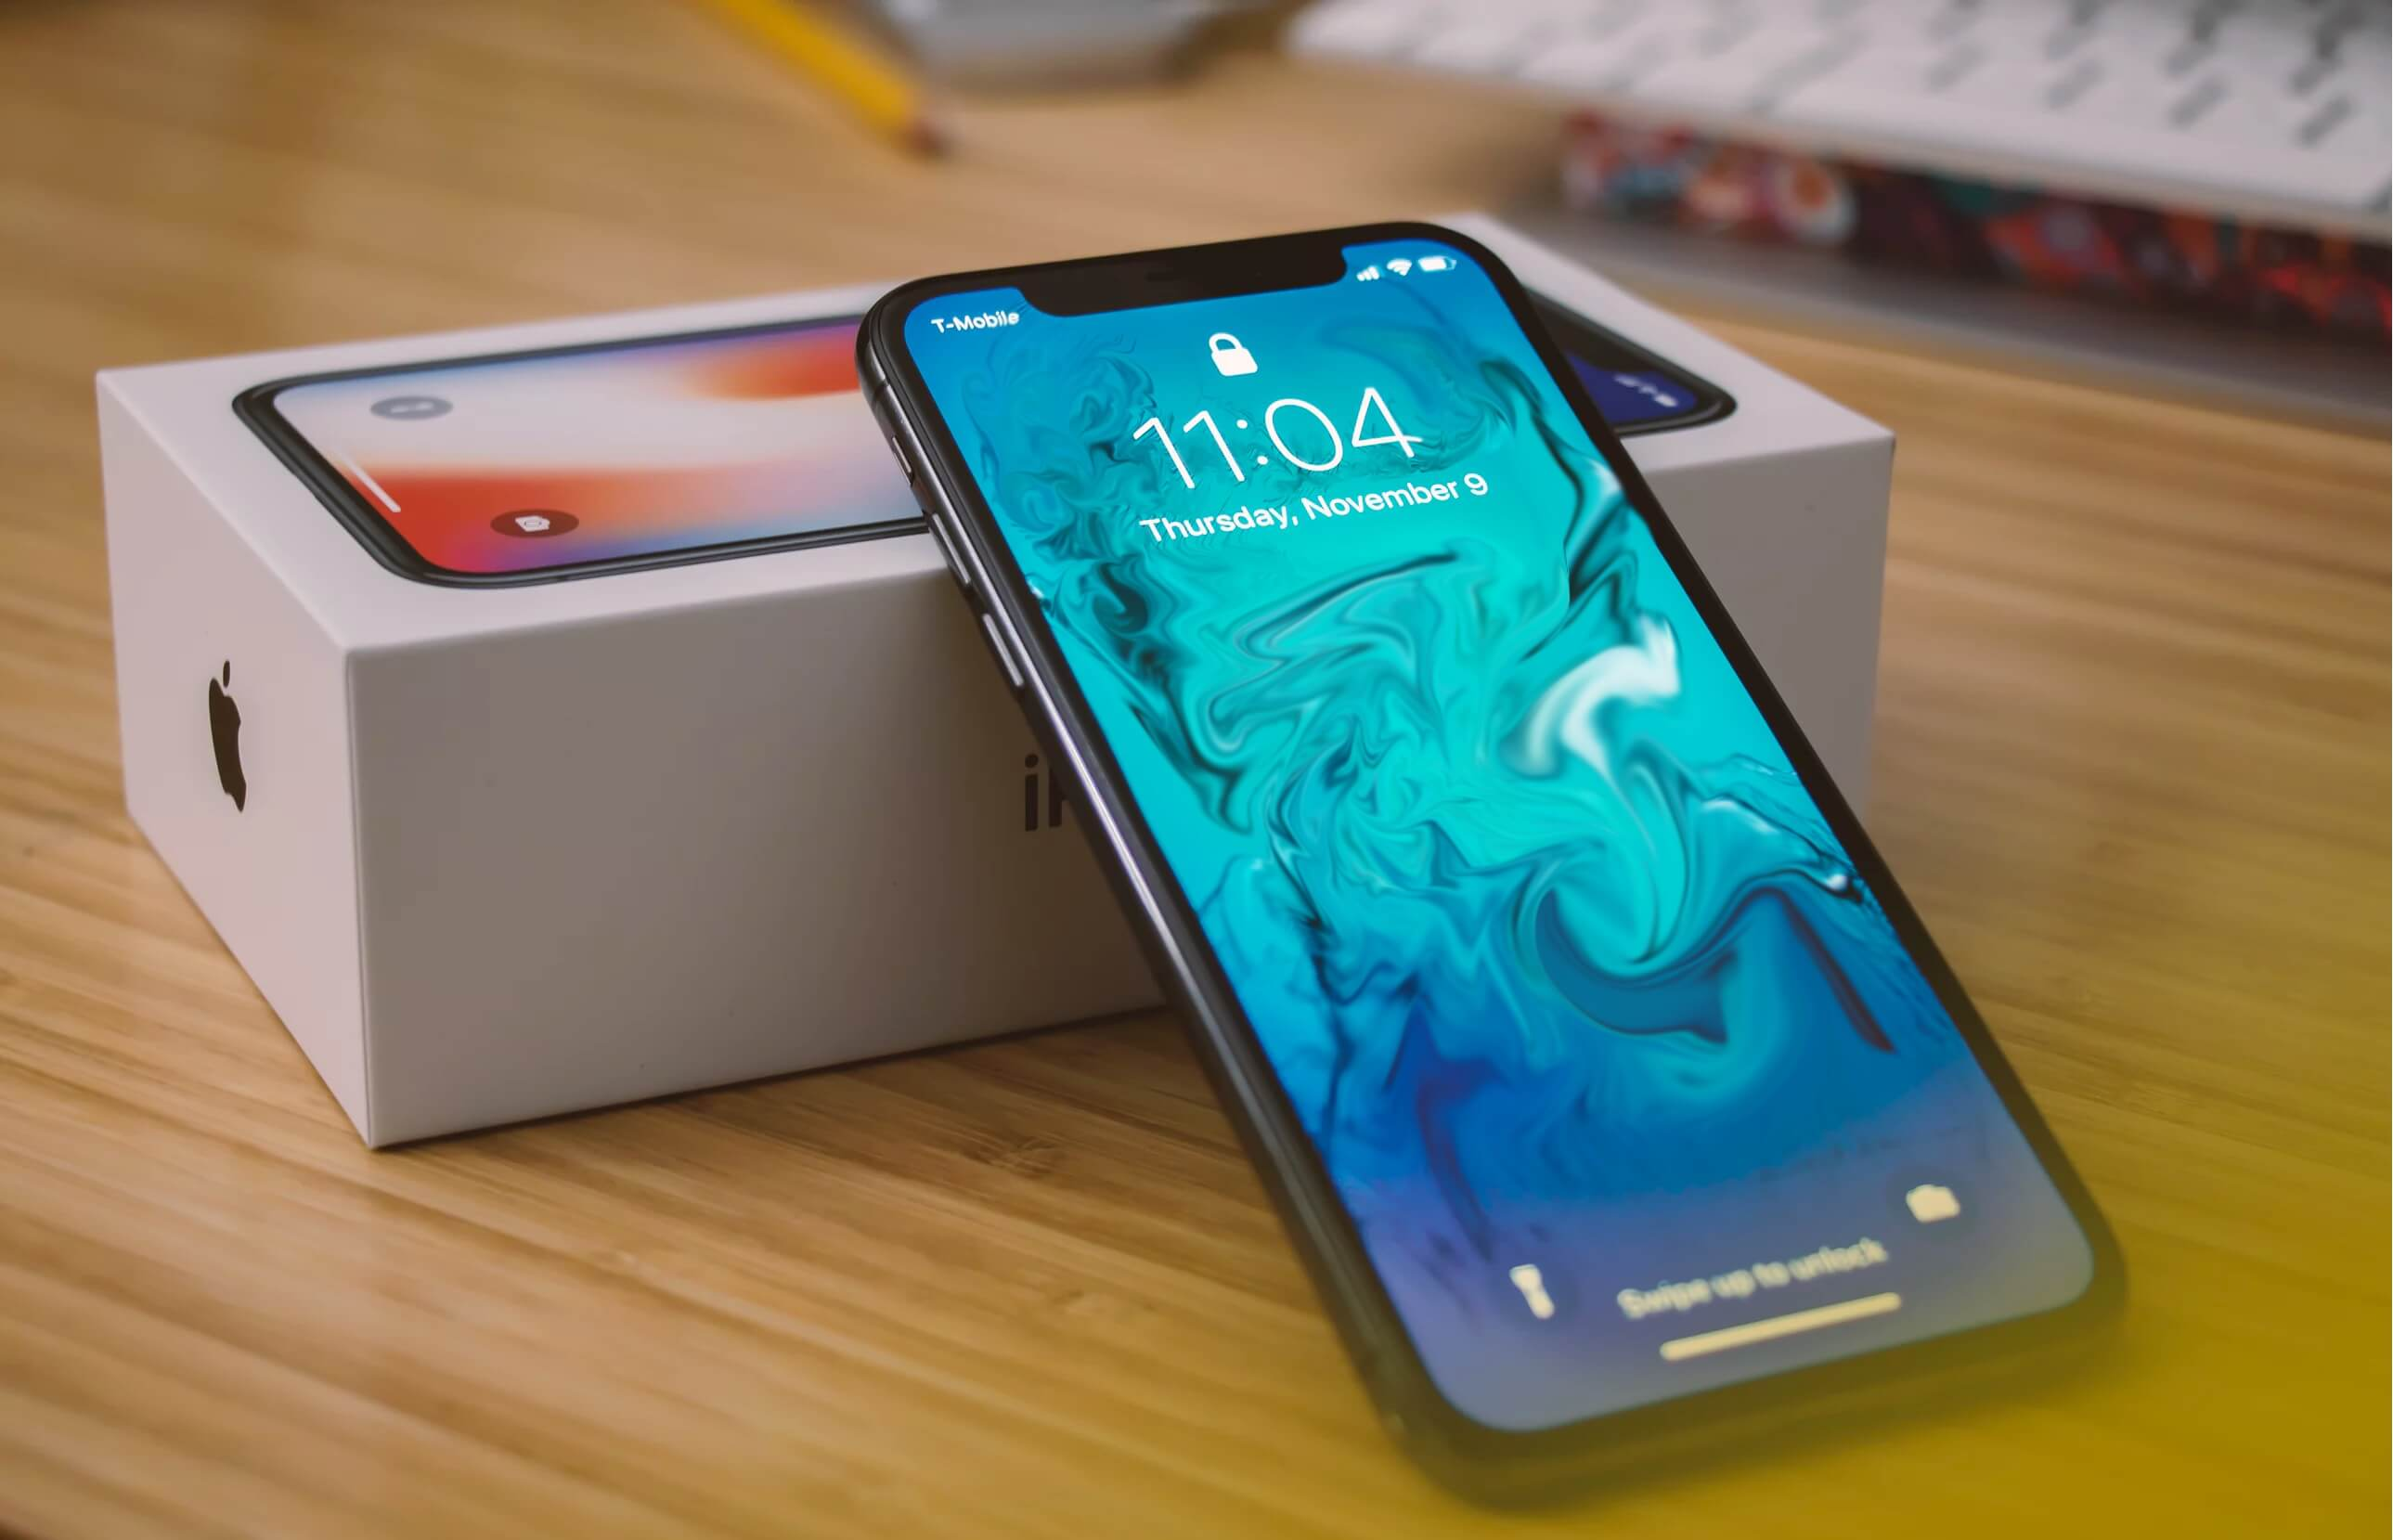 Review the iPhone X